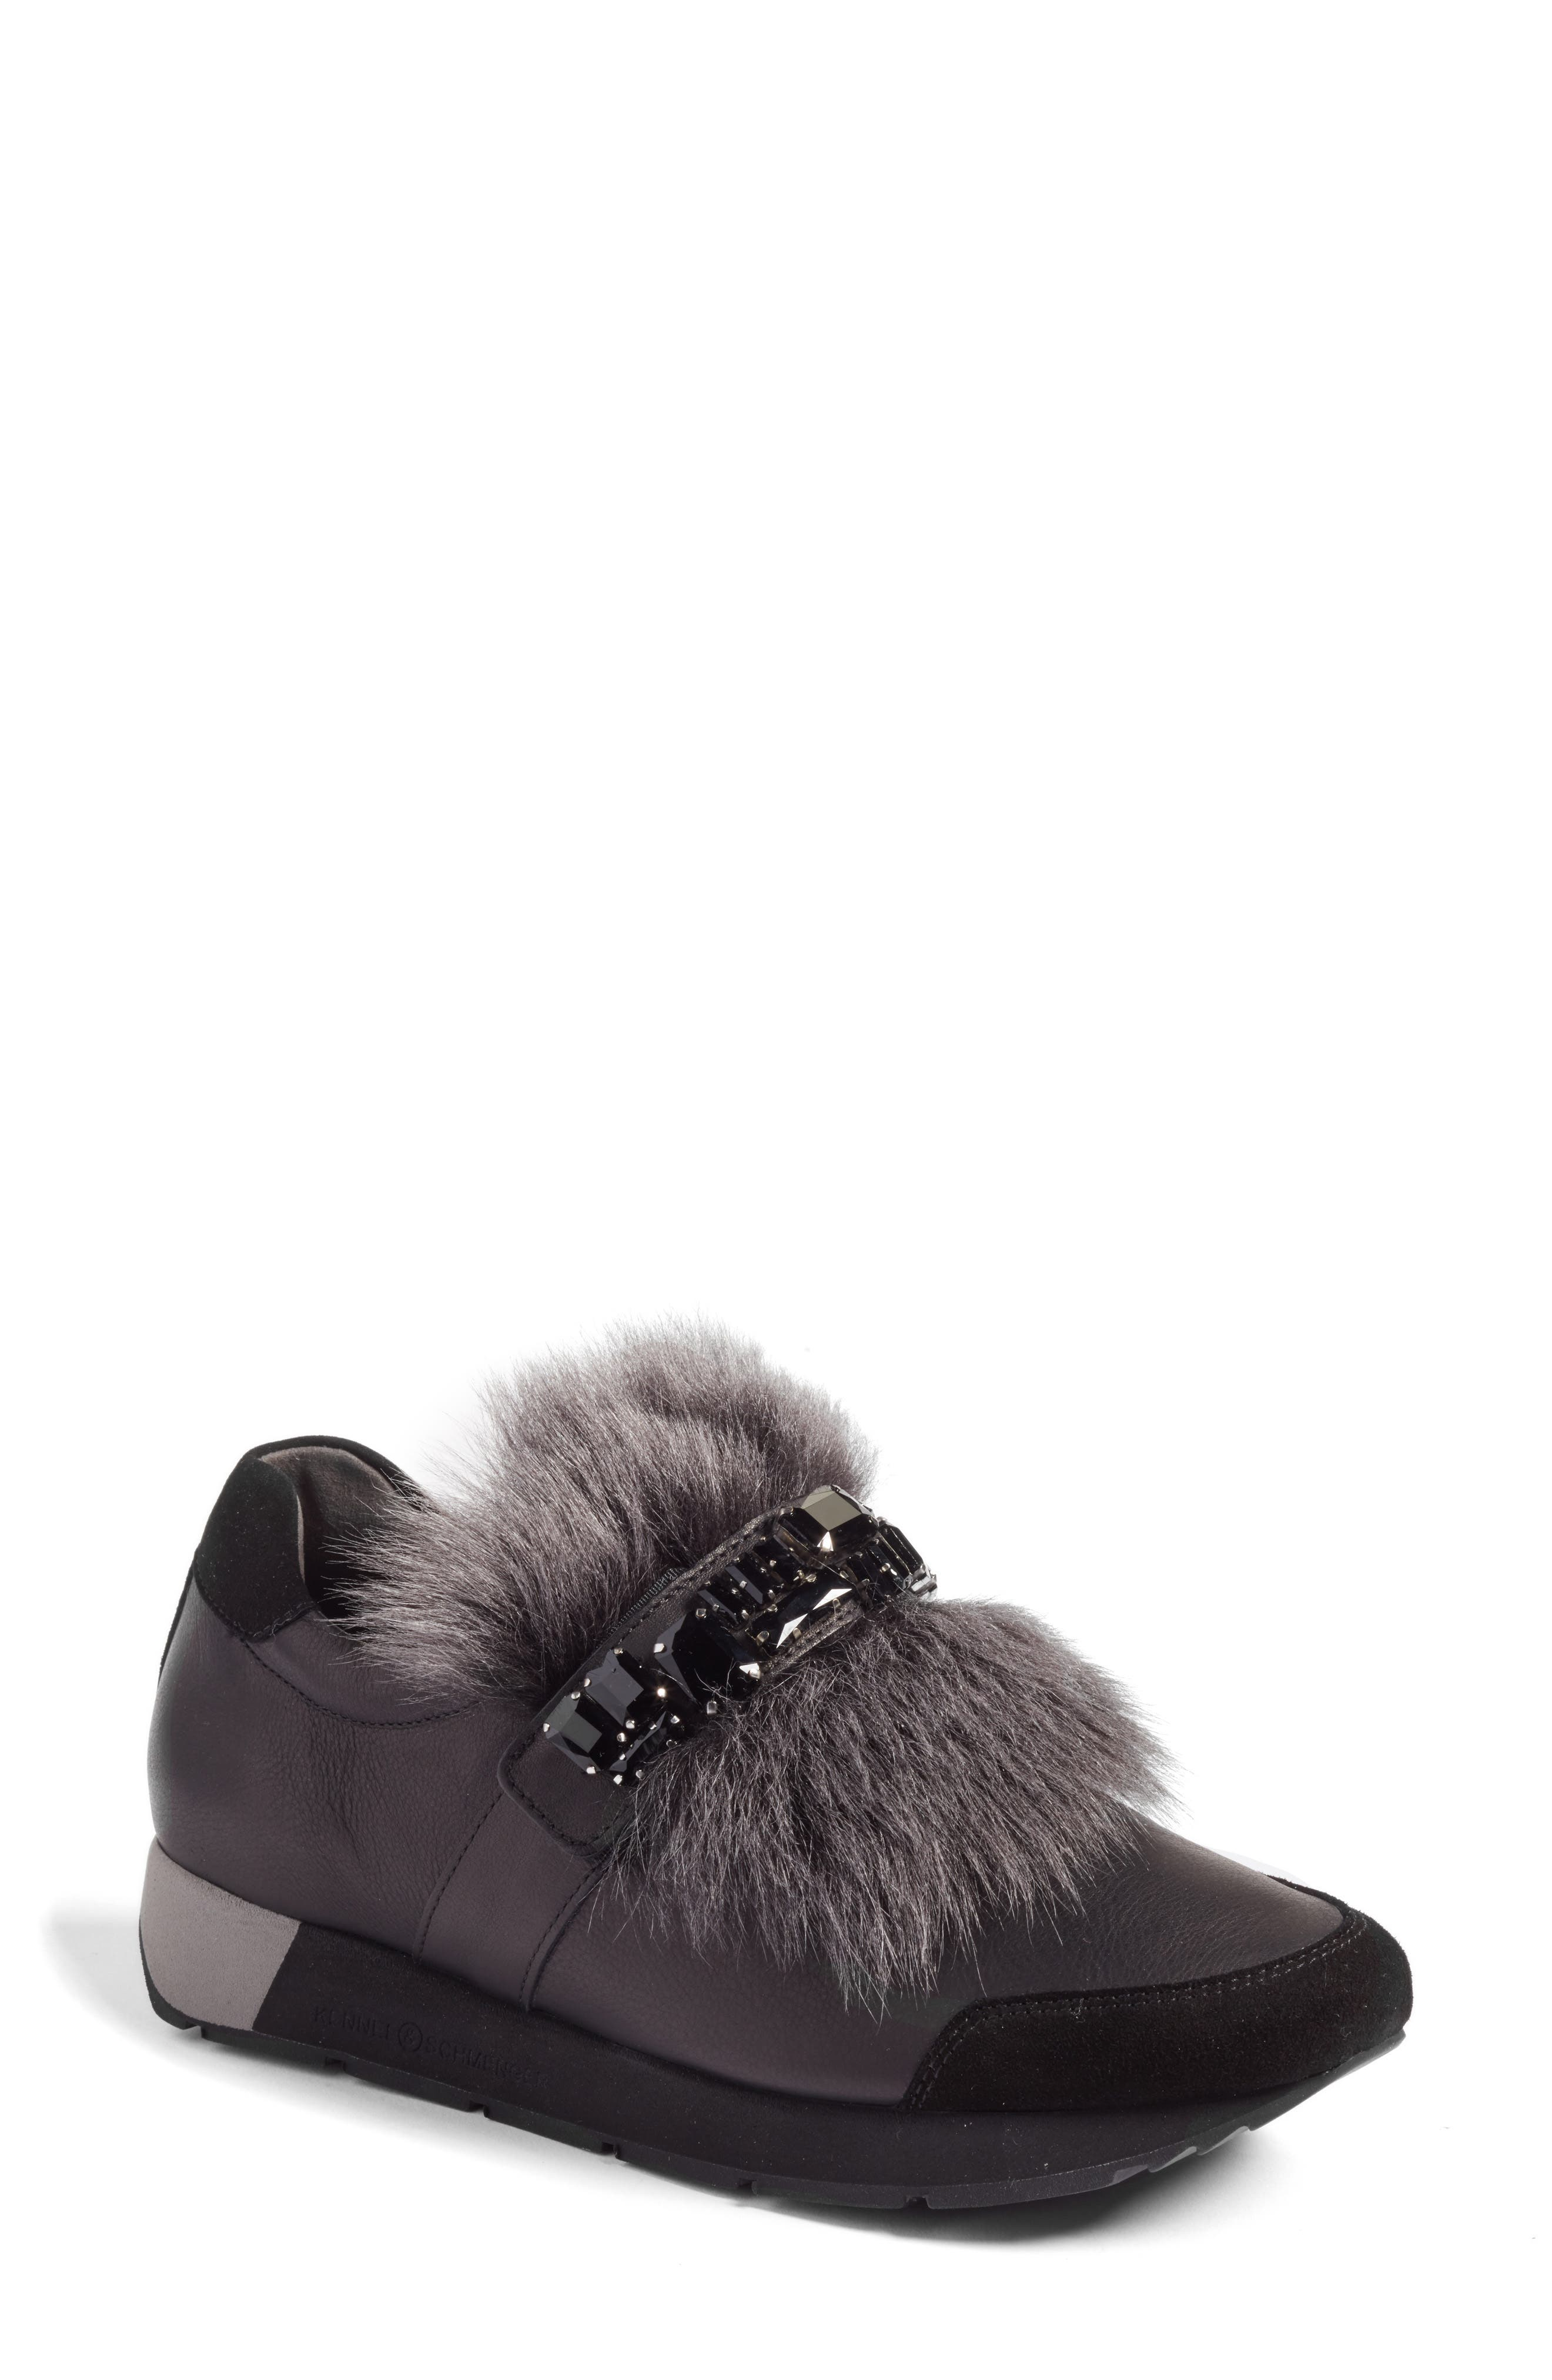 Kennel & Schmenger Racer Slip-On Sneaker with Genuine Shearling Trim,                             Main thumbnail 1, color,